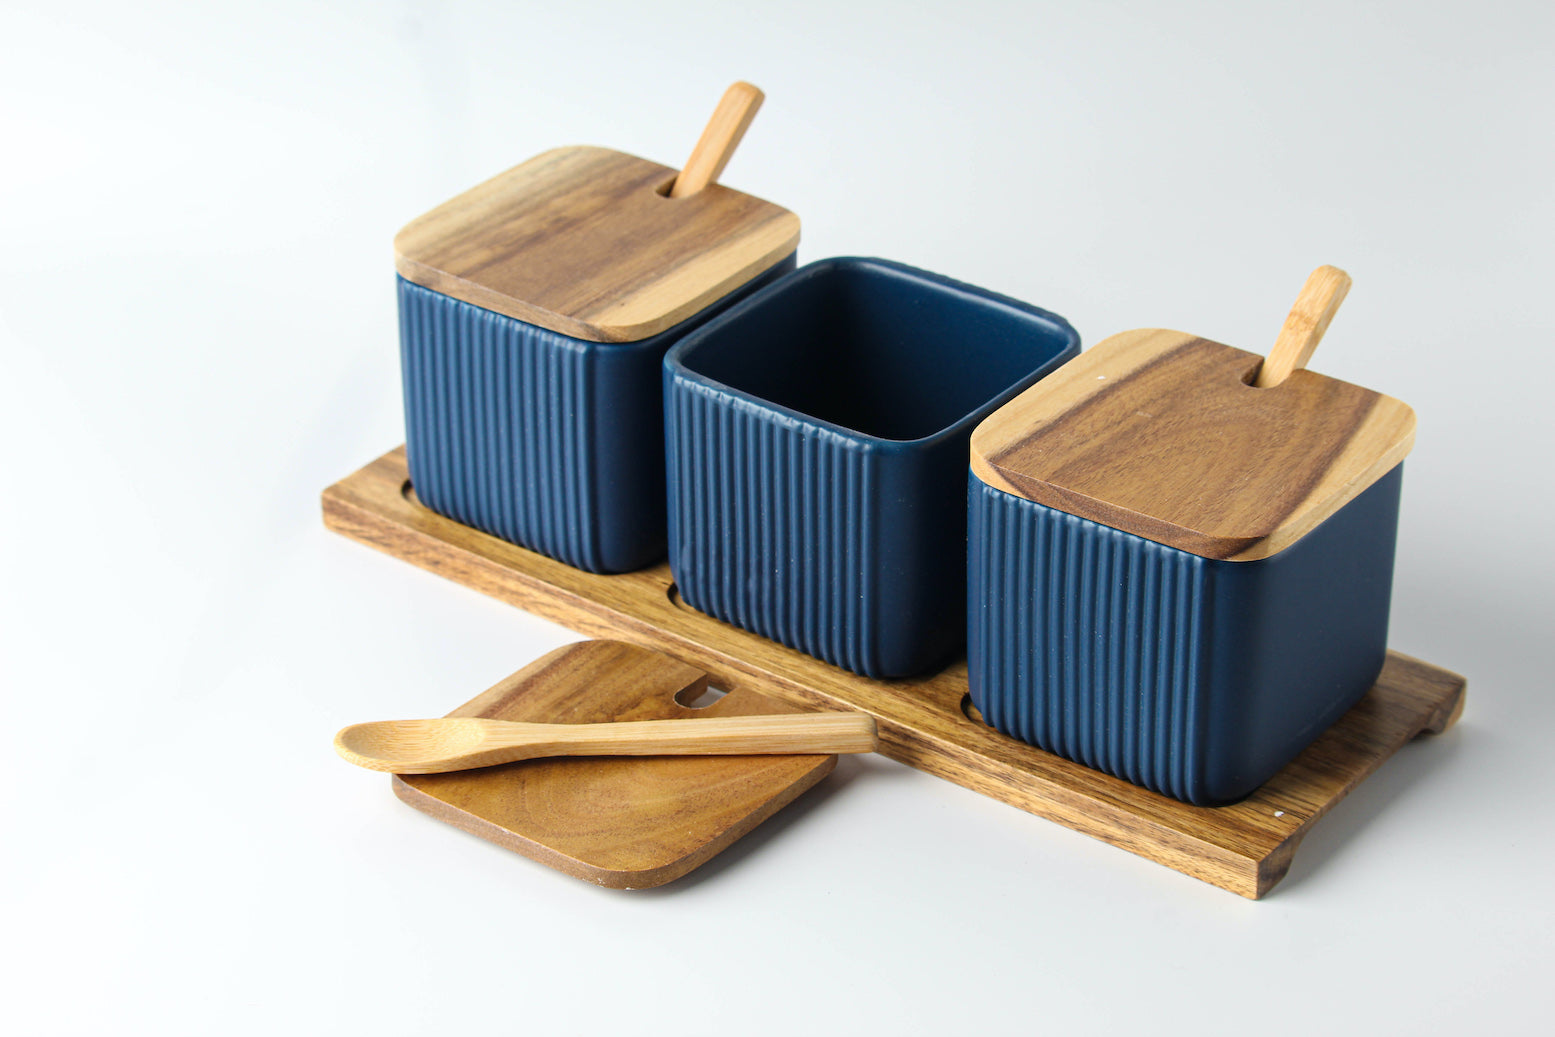 Set of 3 Condiment Ceramic Jars with Wood Lid, Spoon and Tray (Blue)